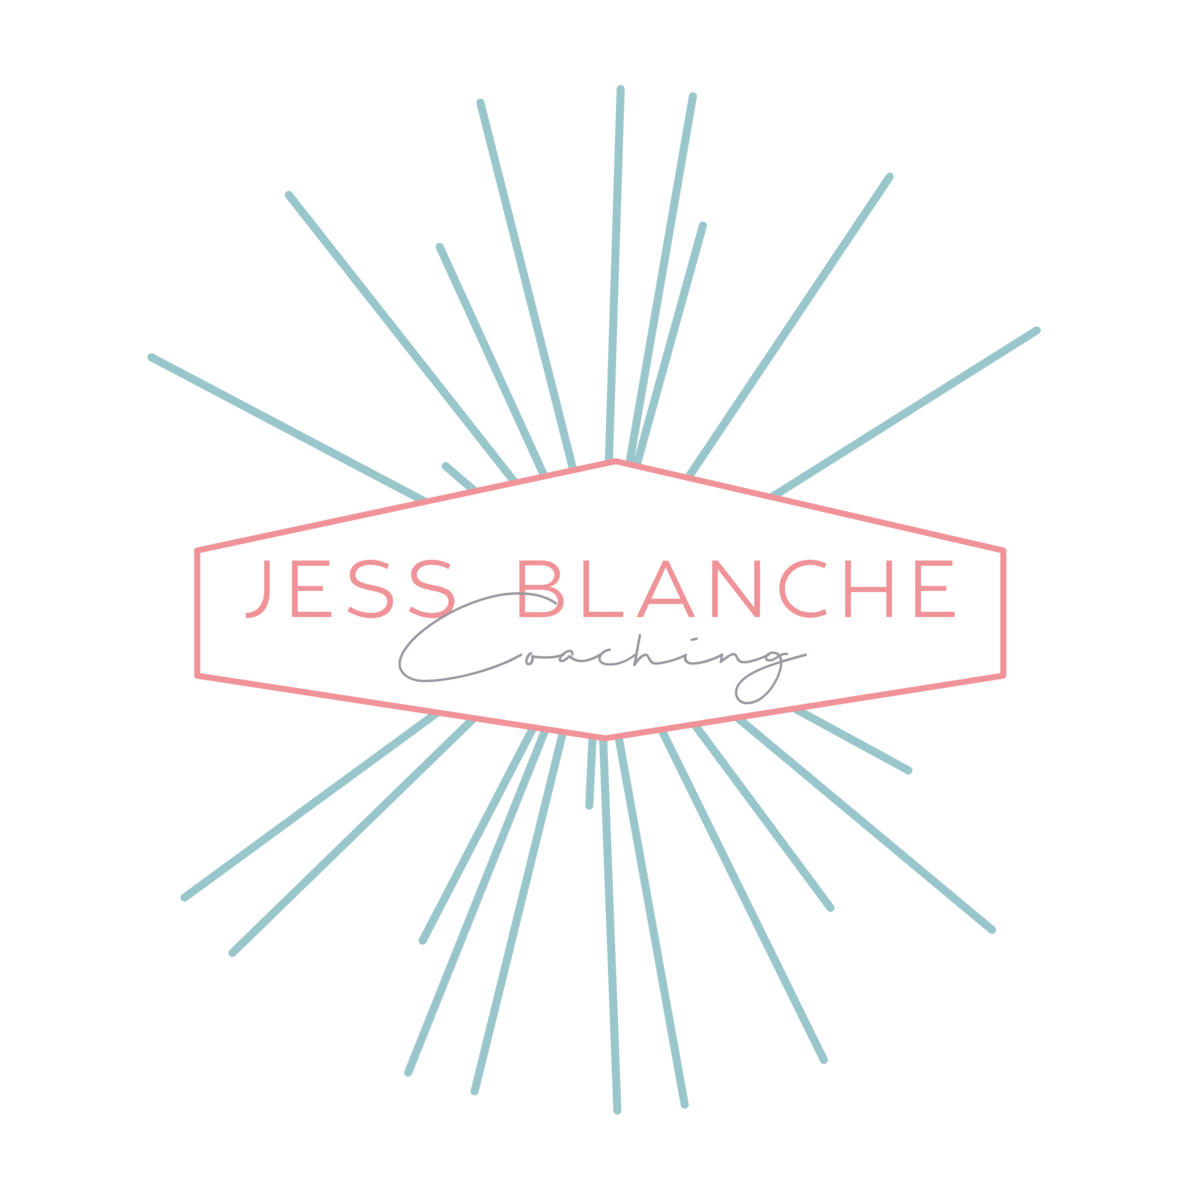 Jess Blanche Coaching Transparent Logos-10